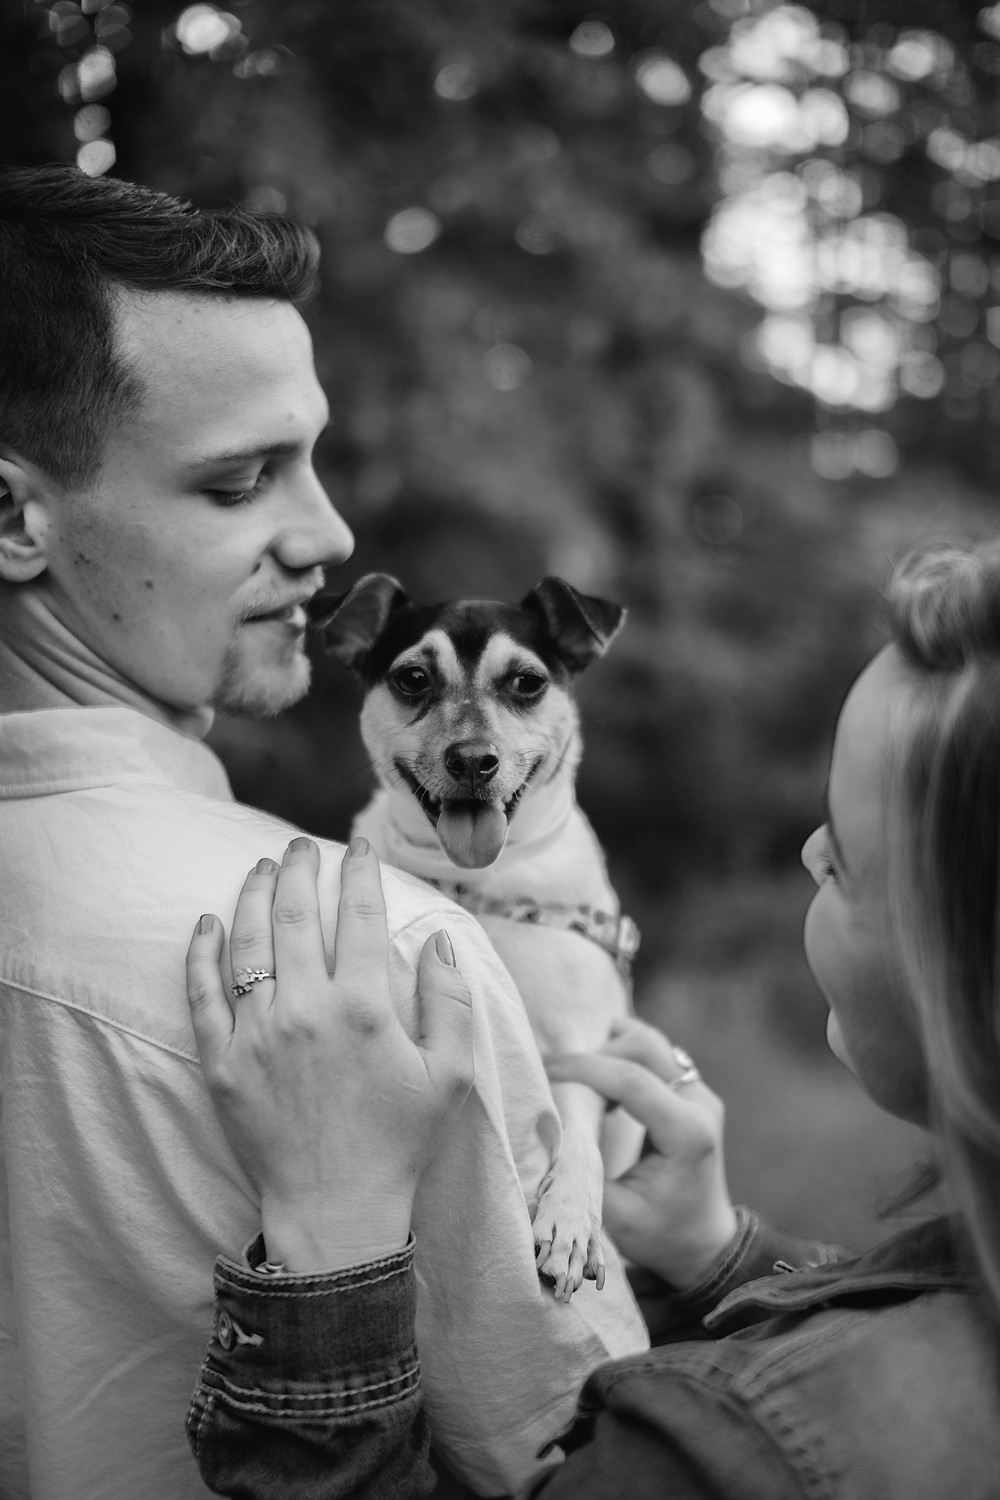 springfield, il, illinois, downtown, springfield engagement photographer, couples photographer, springfield il wedding photographer, springfield il wedding photography, springfield il engagement photographer, couple, engaged, central illinois, sherman, il chatham, rochestor, lifestyle, affordable, cheap, christian, believer, lincoln memorial gardens, springfield park, dog